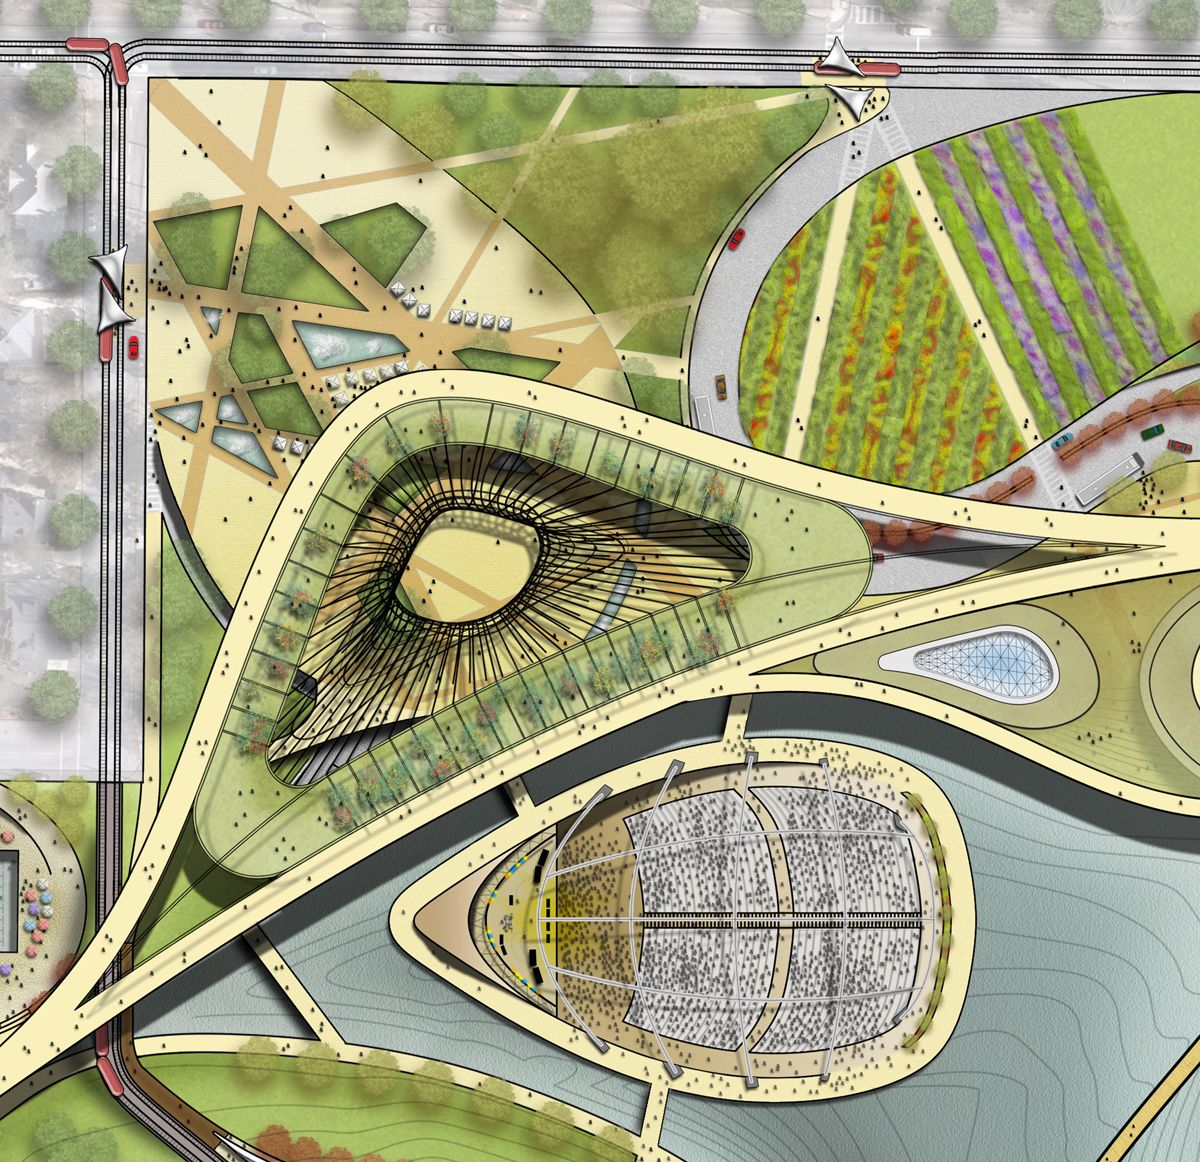 Bellwether Landscape Architects In Atlanta Ga: Proposed Main Park Entrance With Children's Museum And